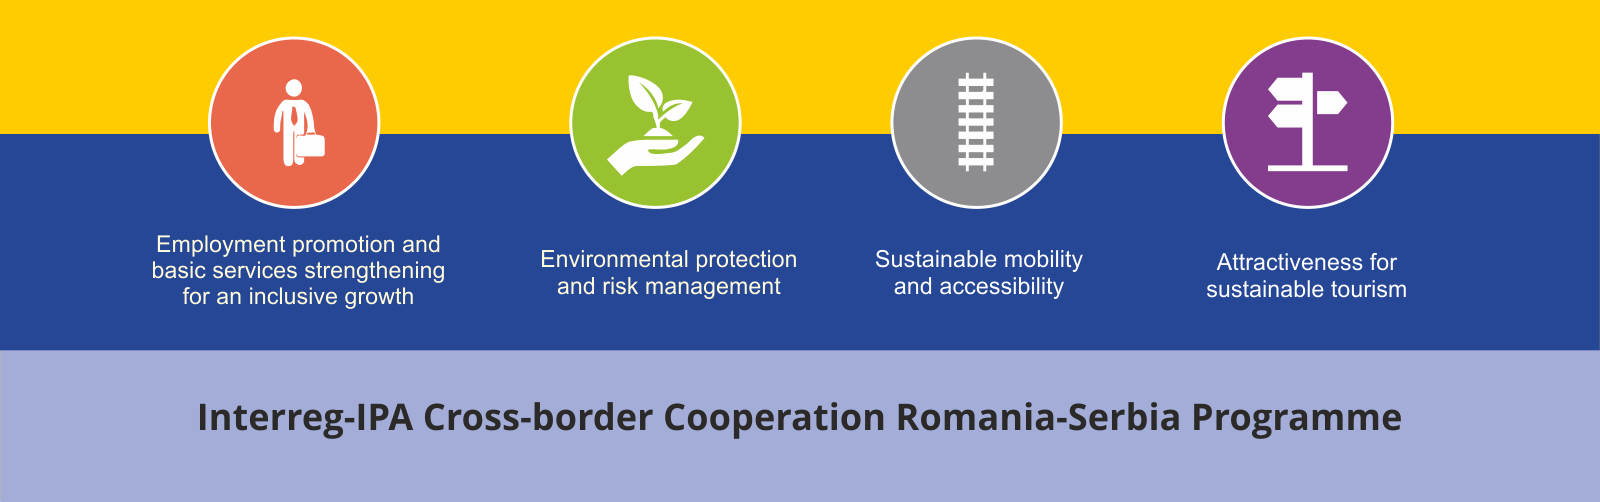 Interreg-IPA Cross-border Cooperation Programme Romania – Serbia